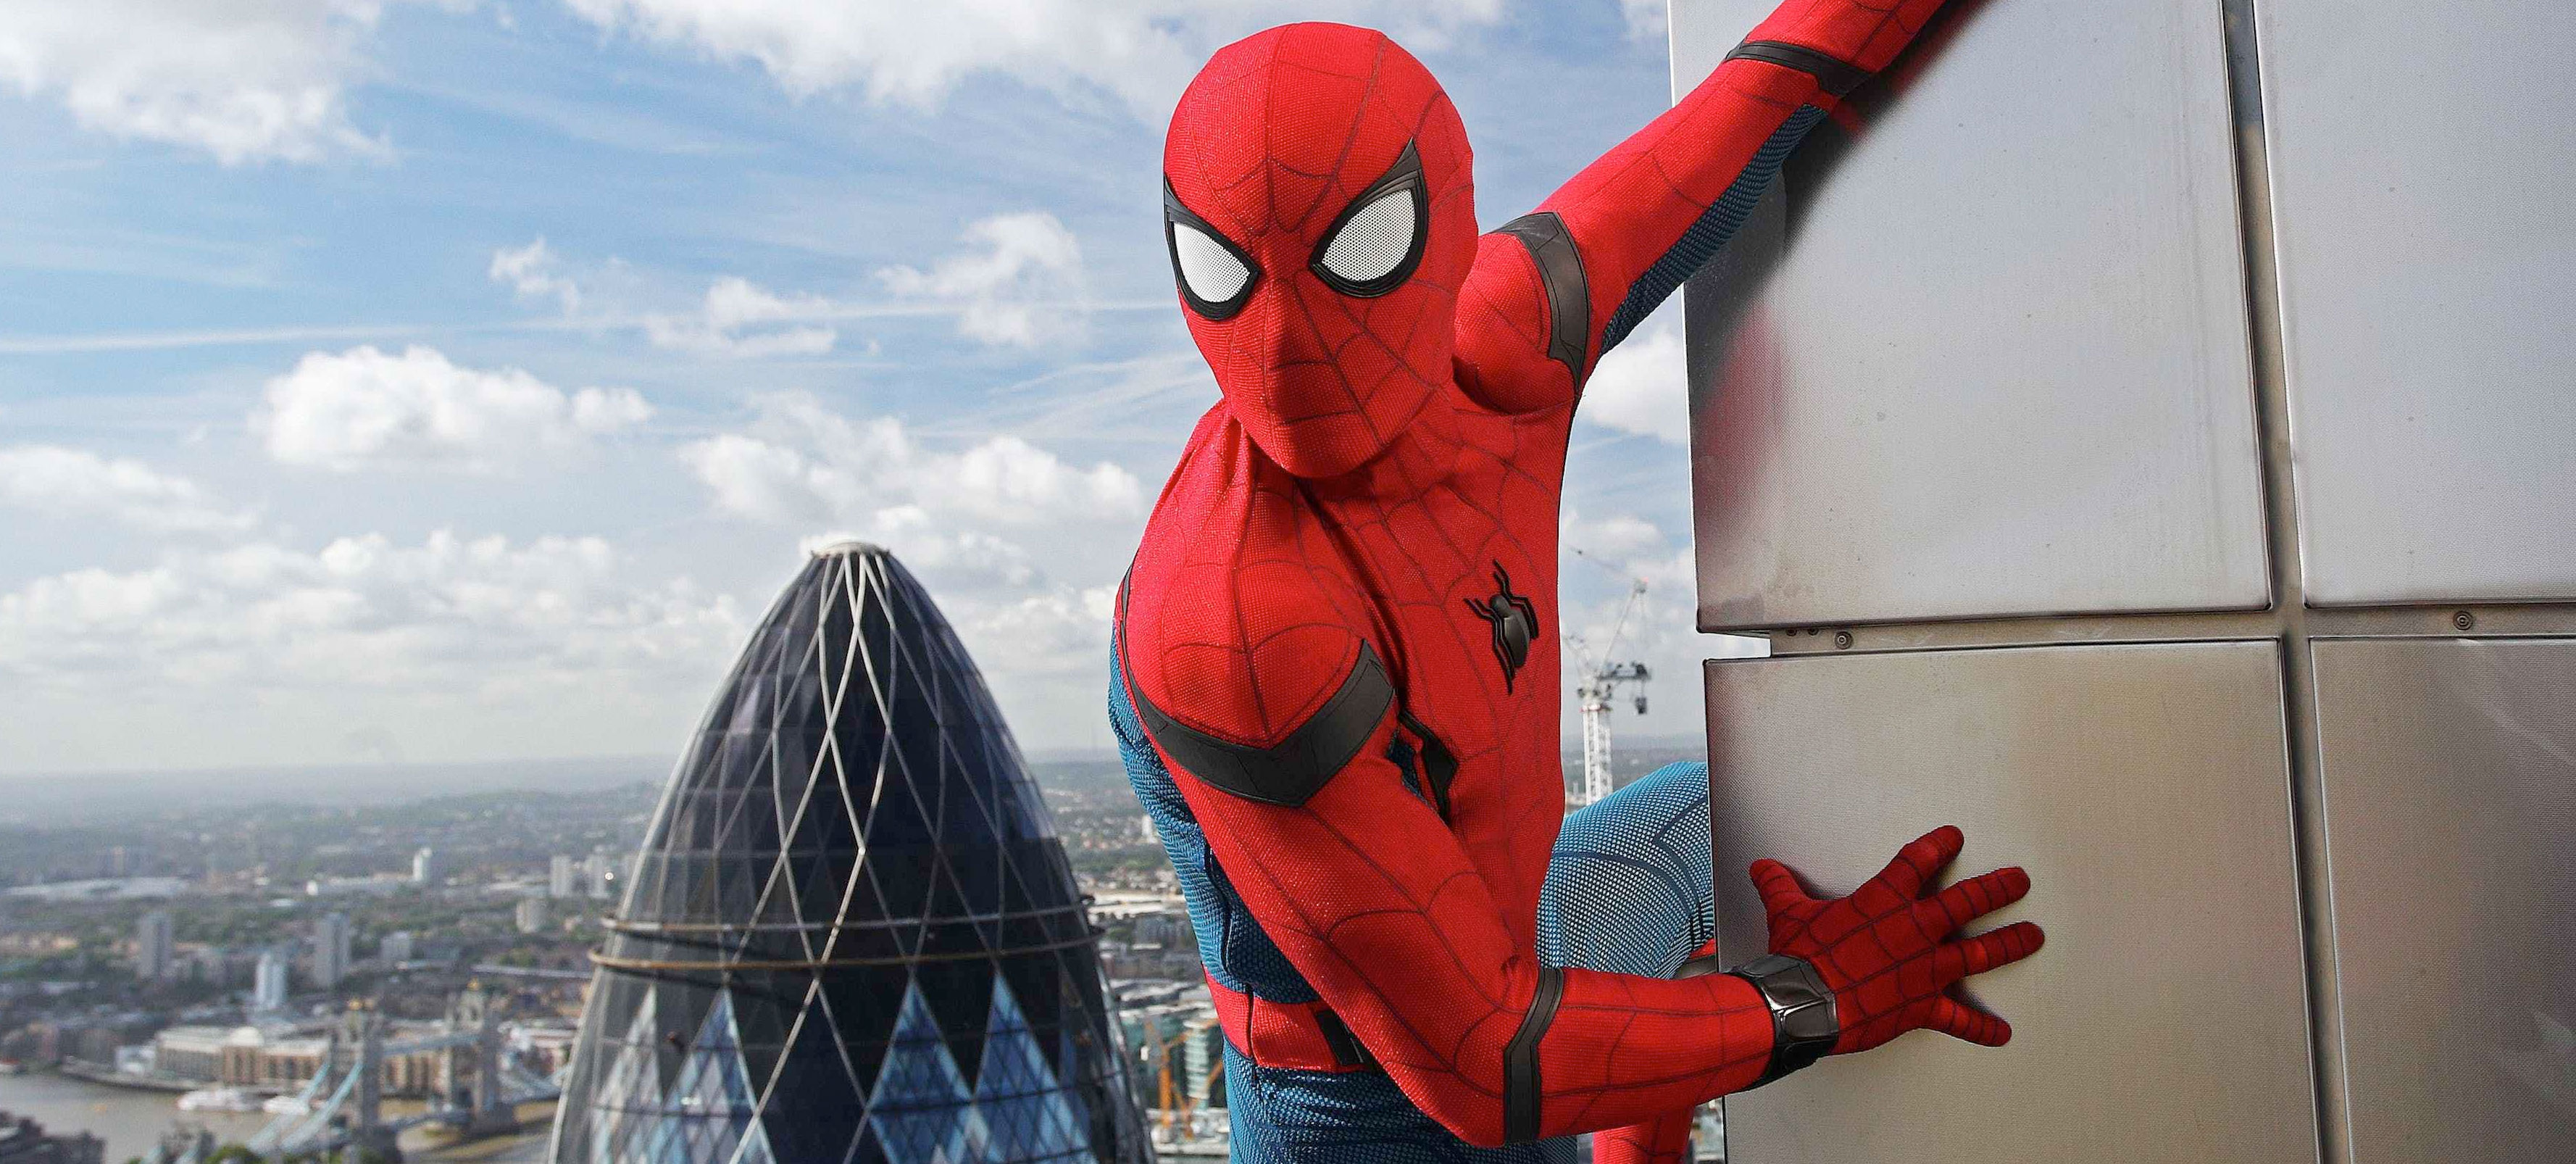 Rushfield Discusses Sony and Marvel Contract